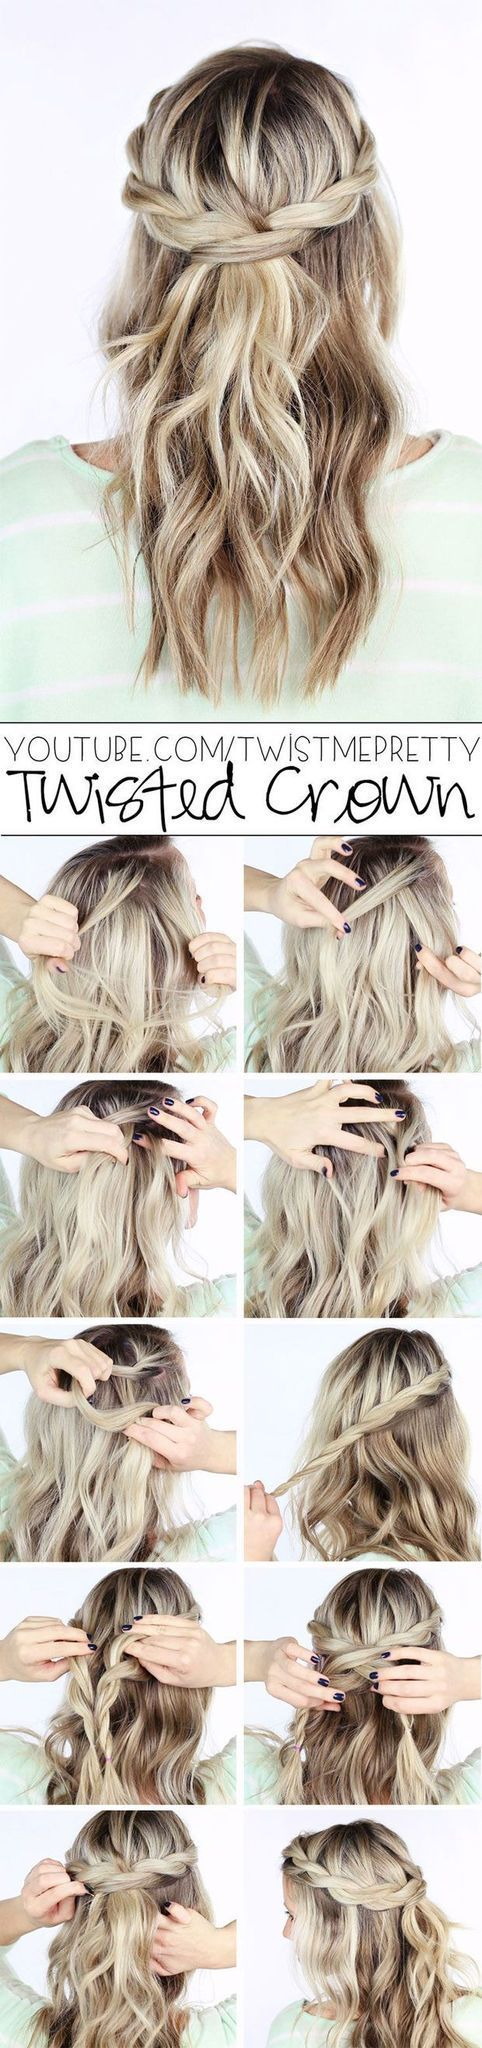 This Boho Braid Crown is gorgeous, and way easier than it seems. Check it out along with 17 other Pinterest Hair Tutorials You Need to Try!